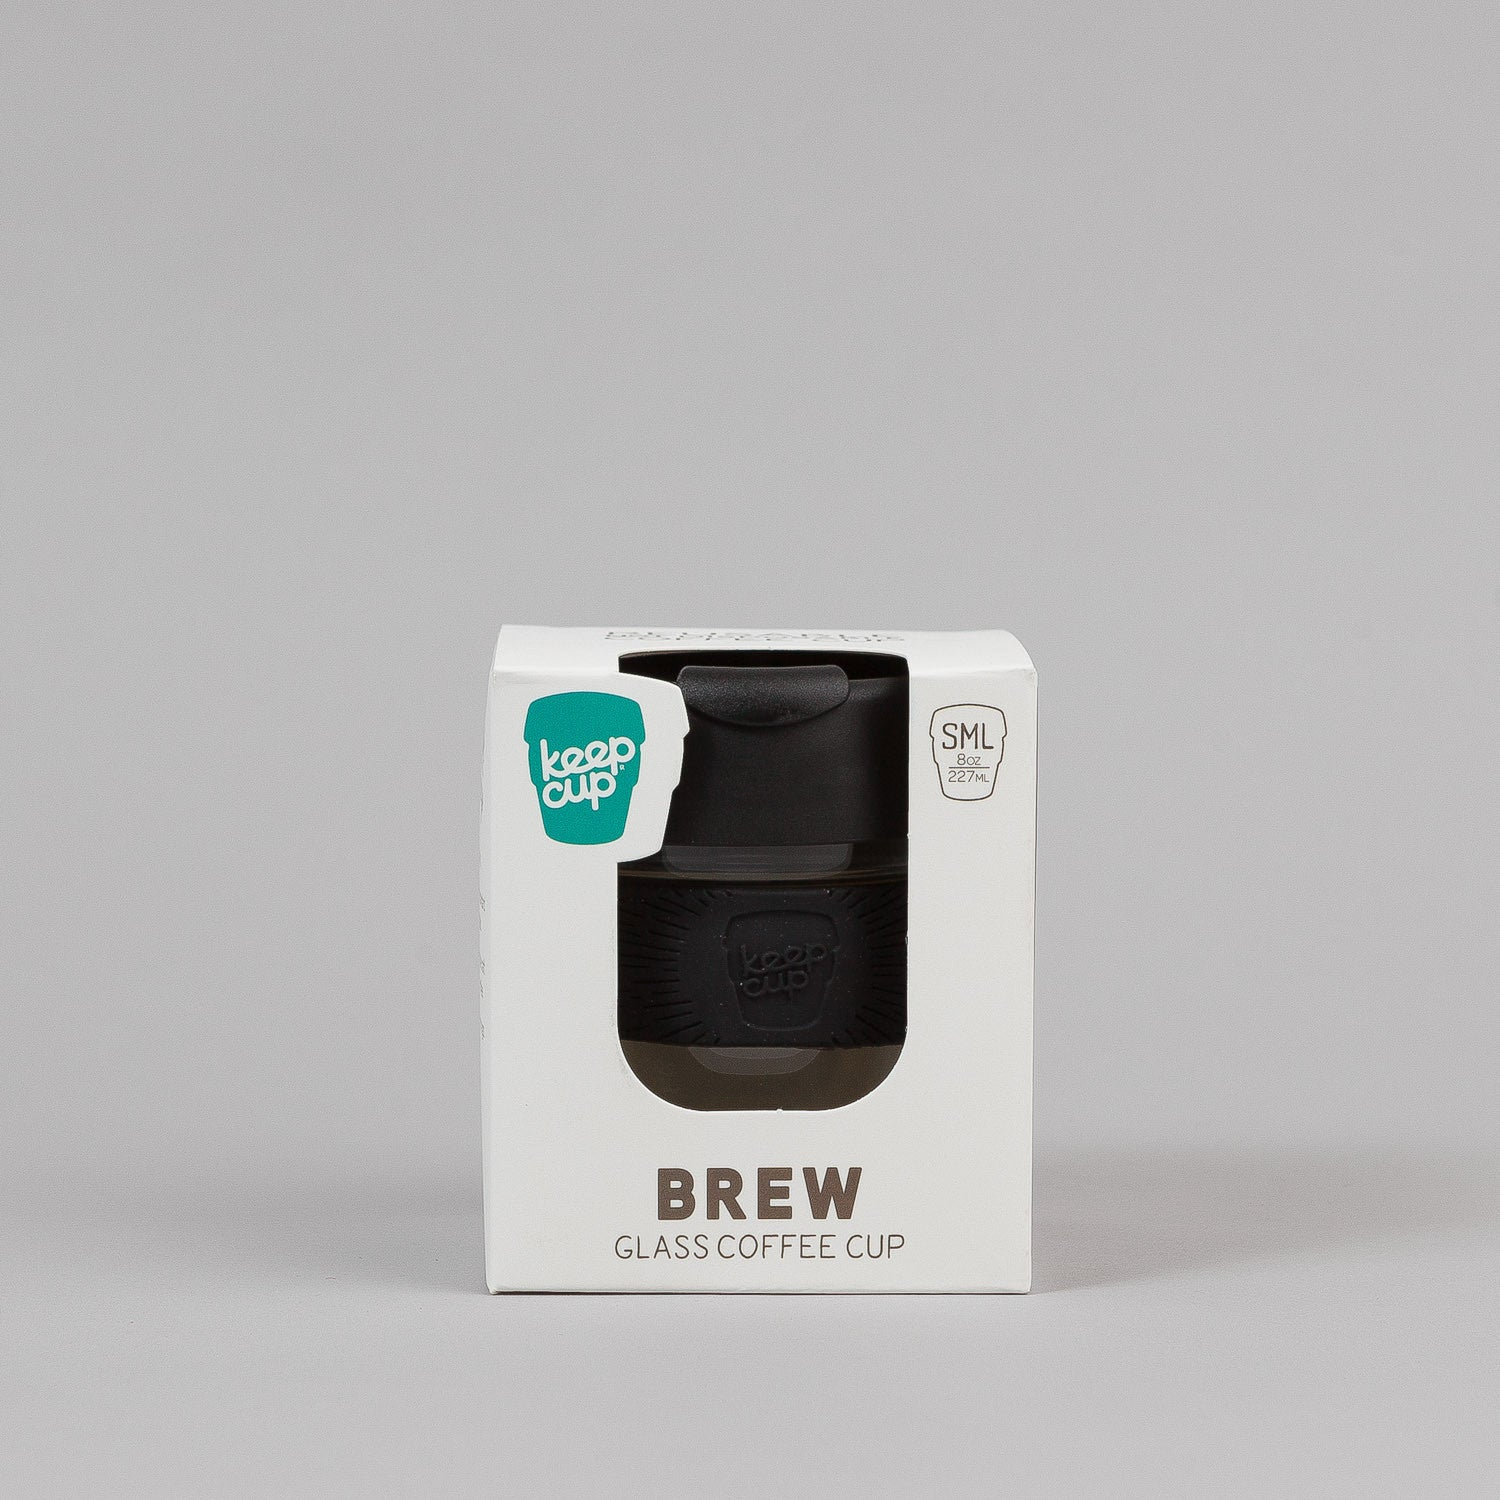 KeepCup Metal 8oz Small Glass Coffee Cup